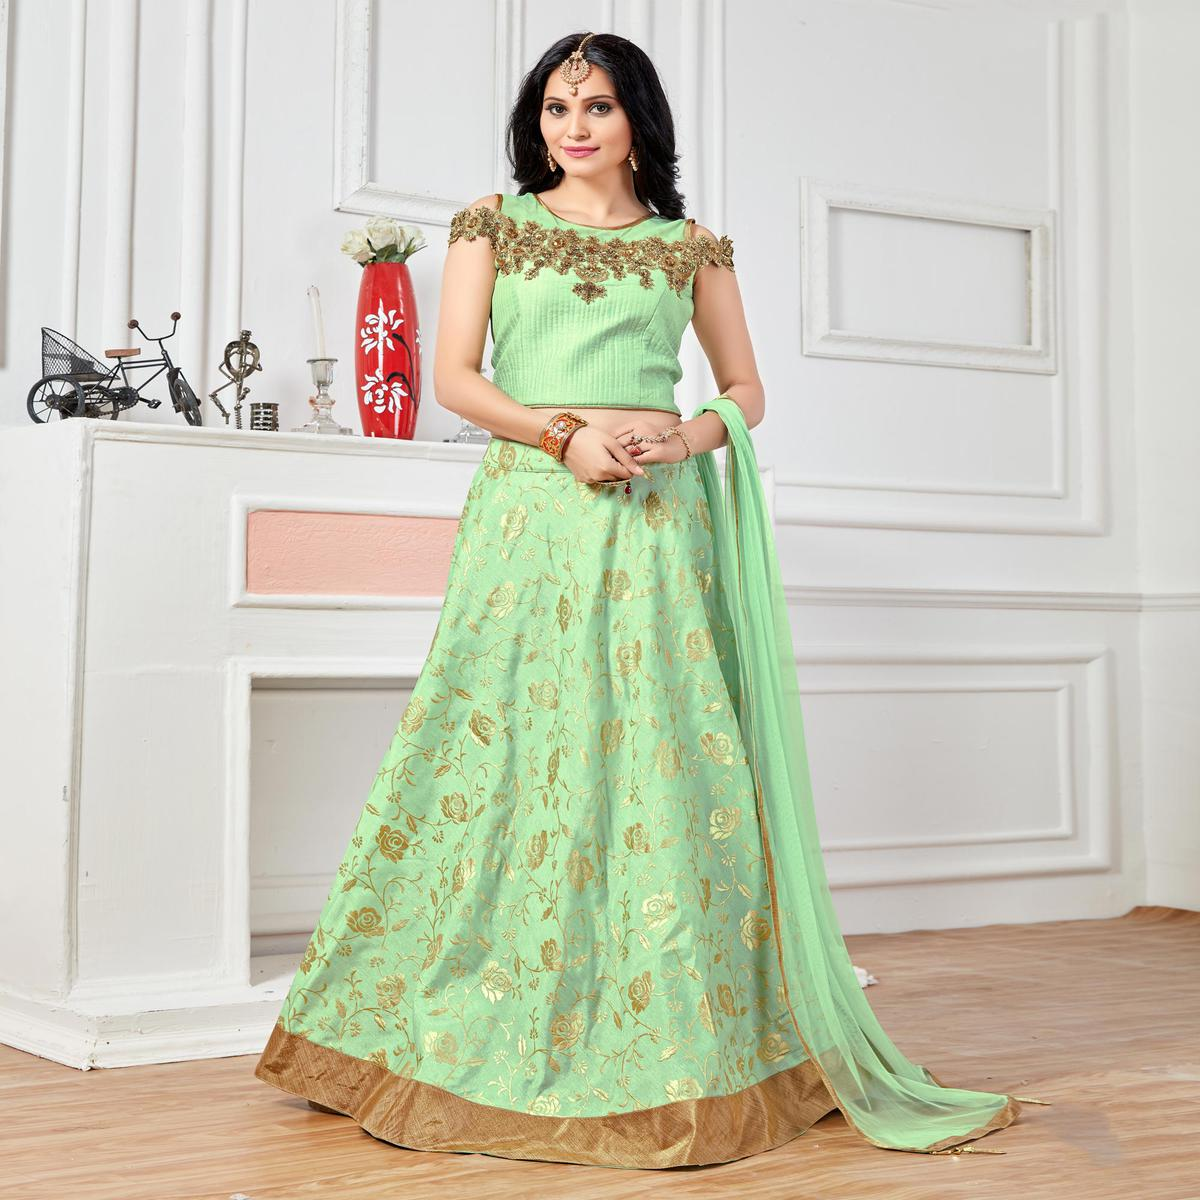 Elegant Art Silk Pista Colored Lehenga Choli